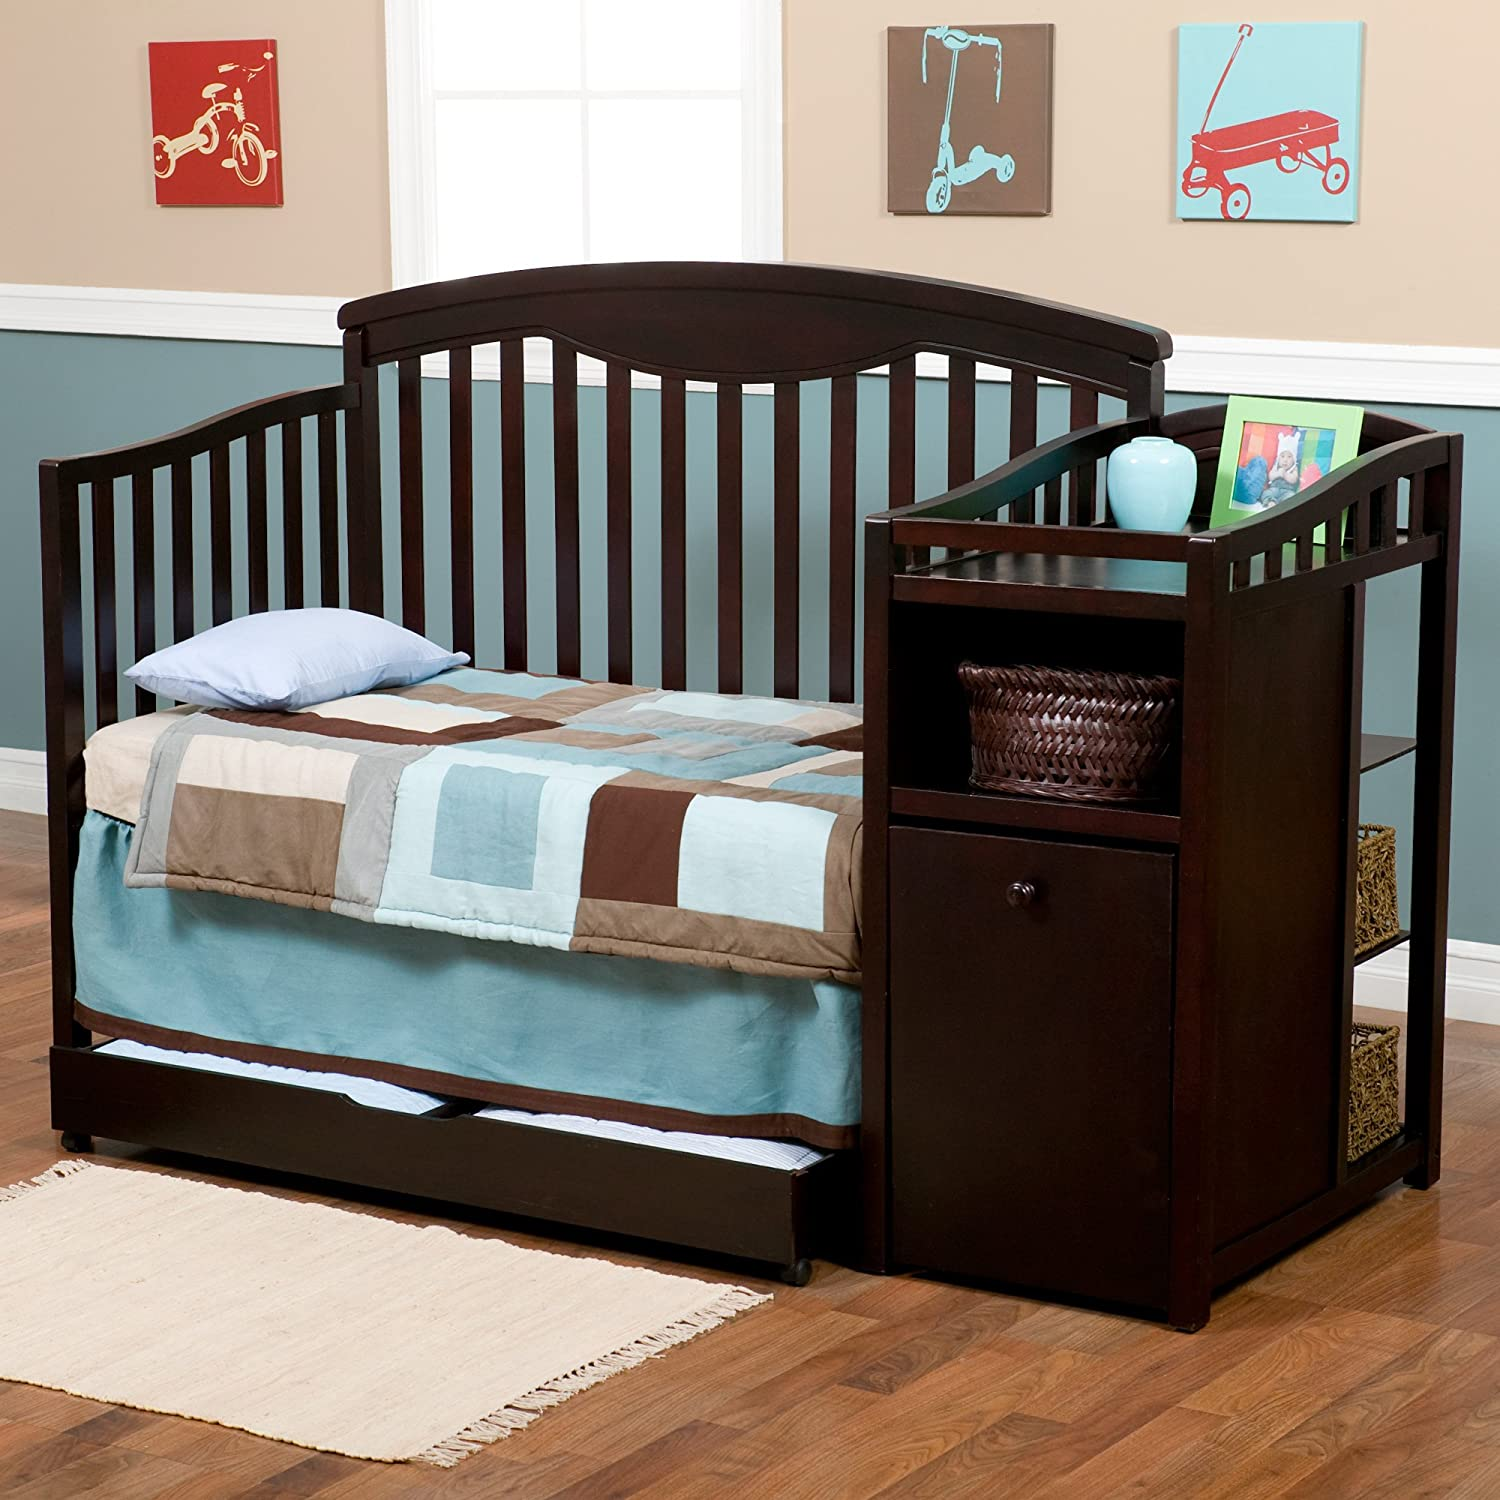 Amazoncom Delta Childrens Products Cambridge Crib N Changer